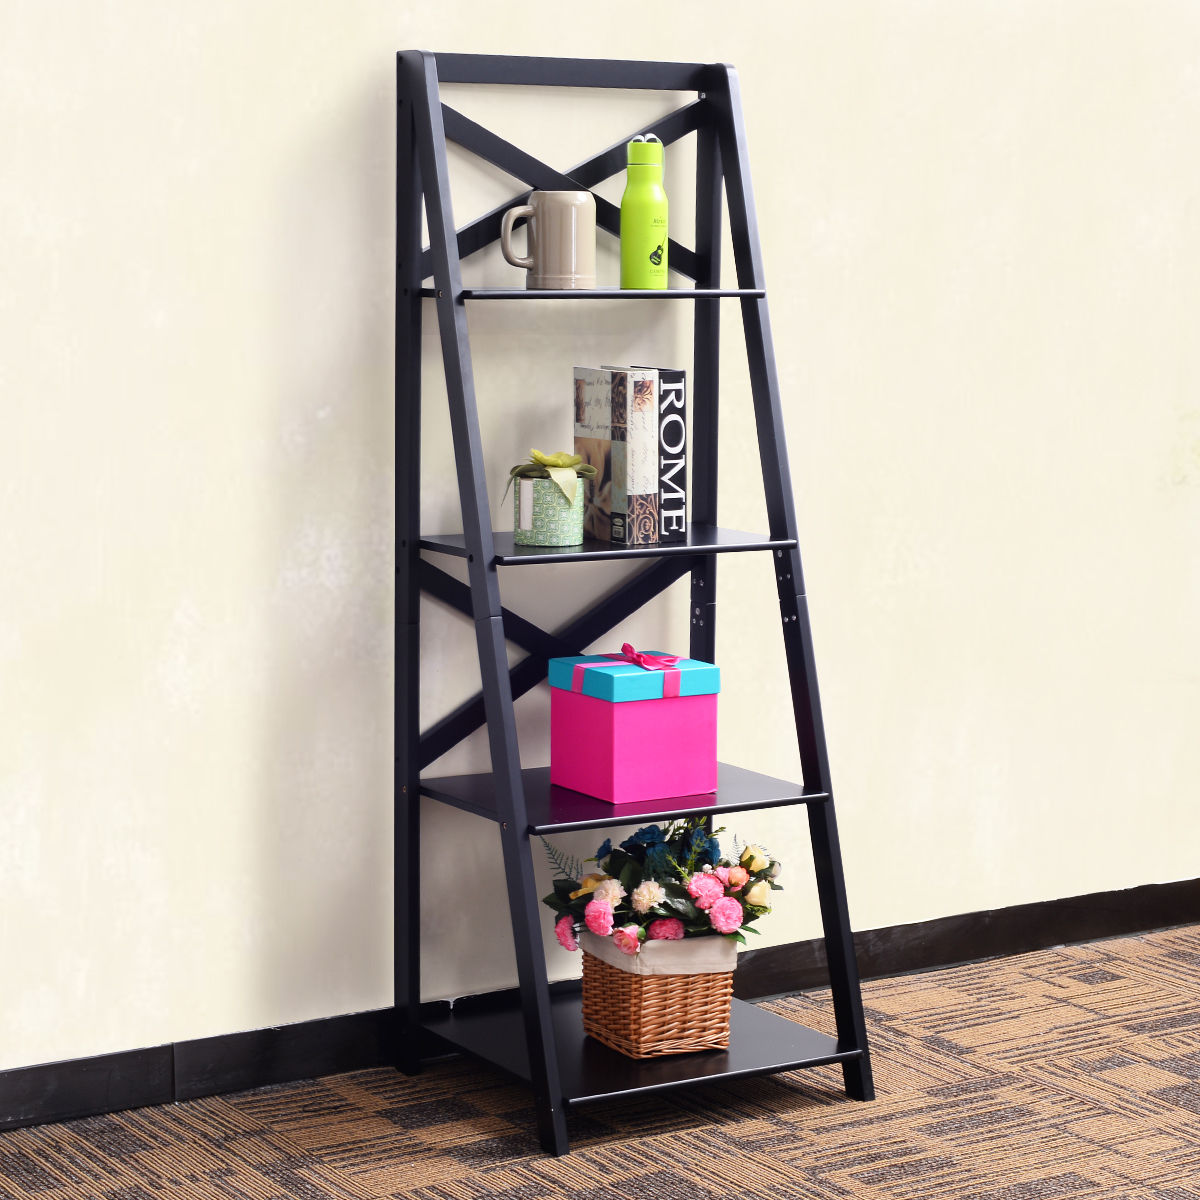 Superbe Costway 4 Tier Ladder Shelf Bookshelf Bookcase Storage Display Leaning Home  Office Decor